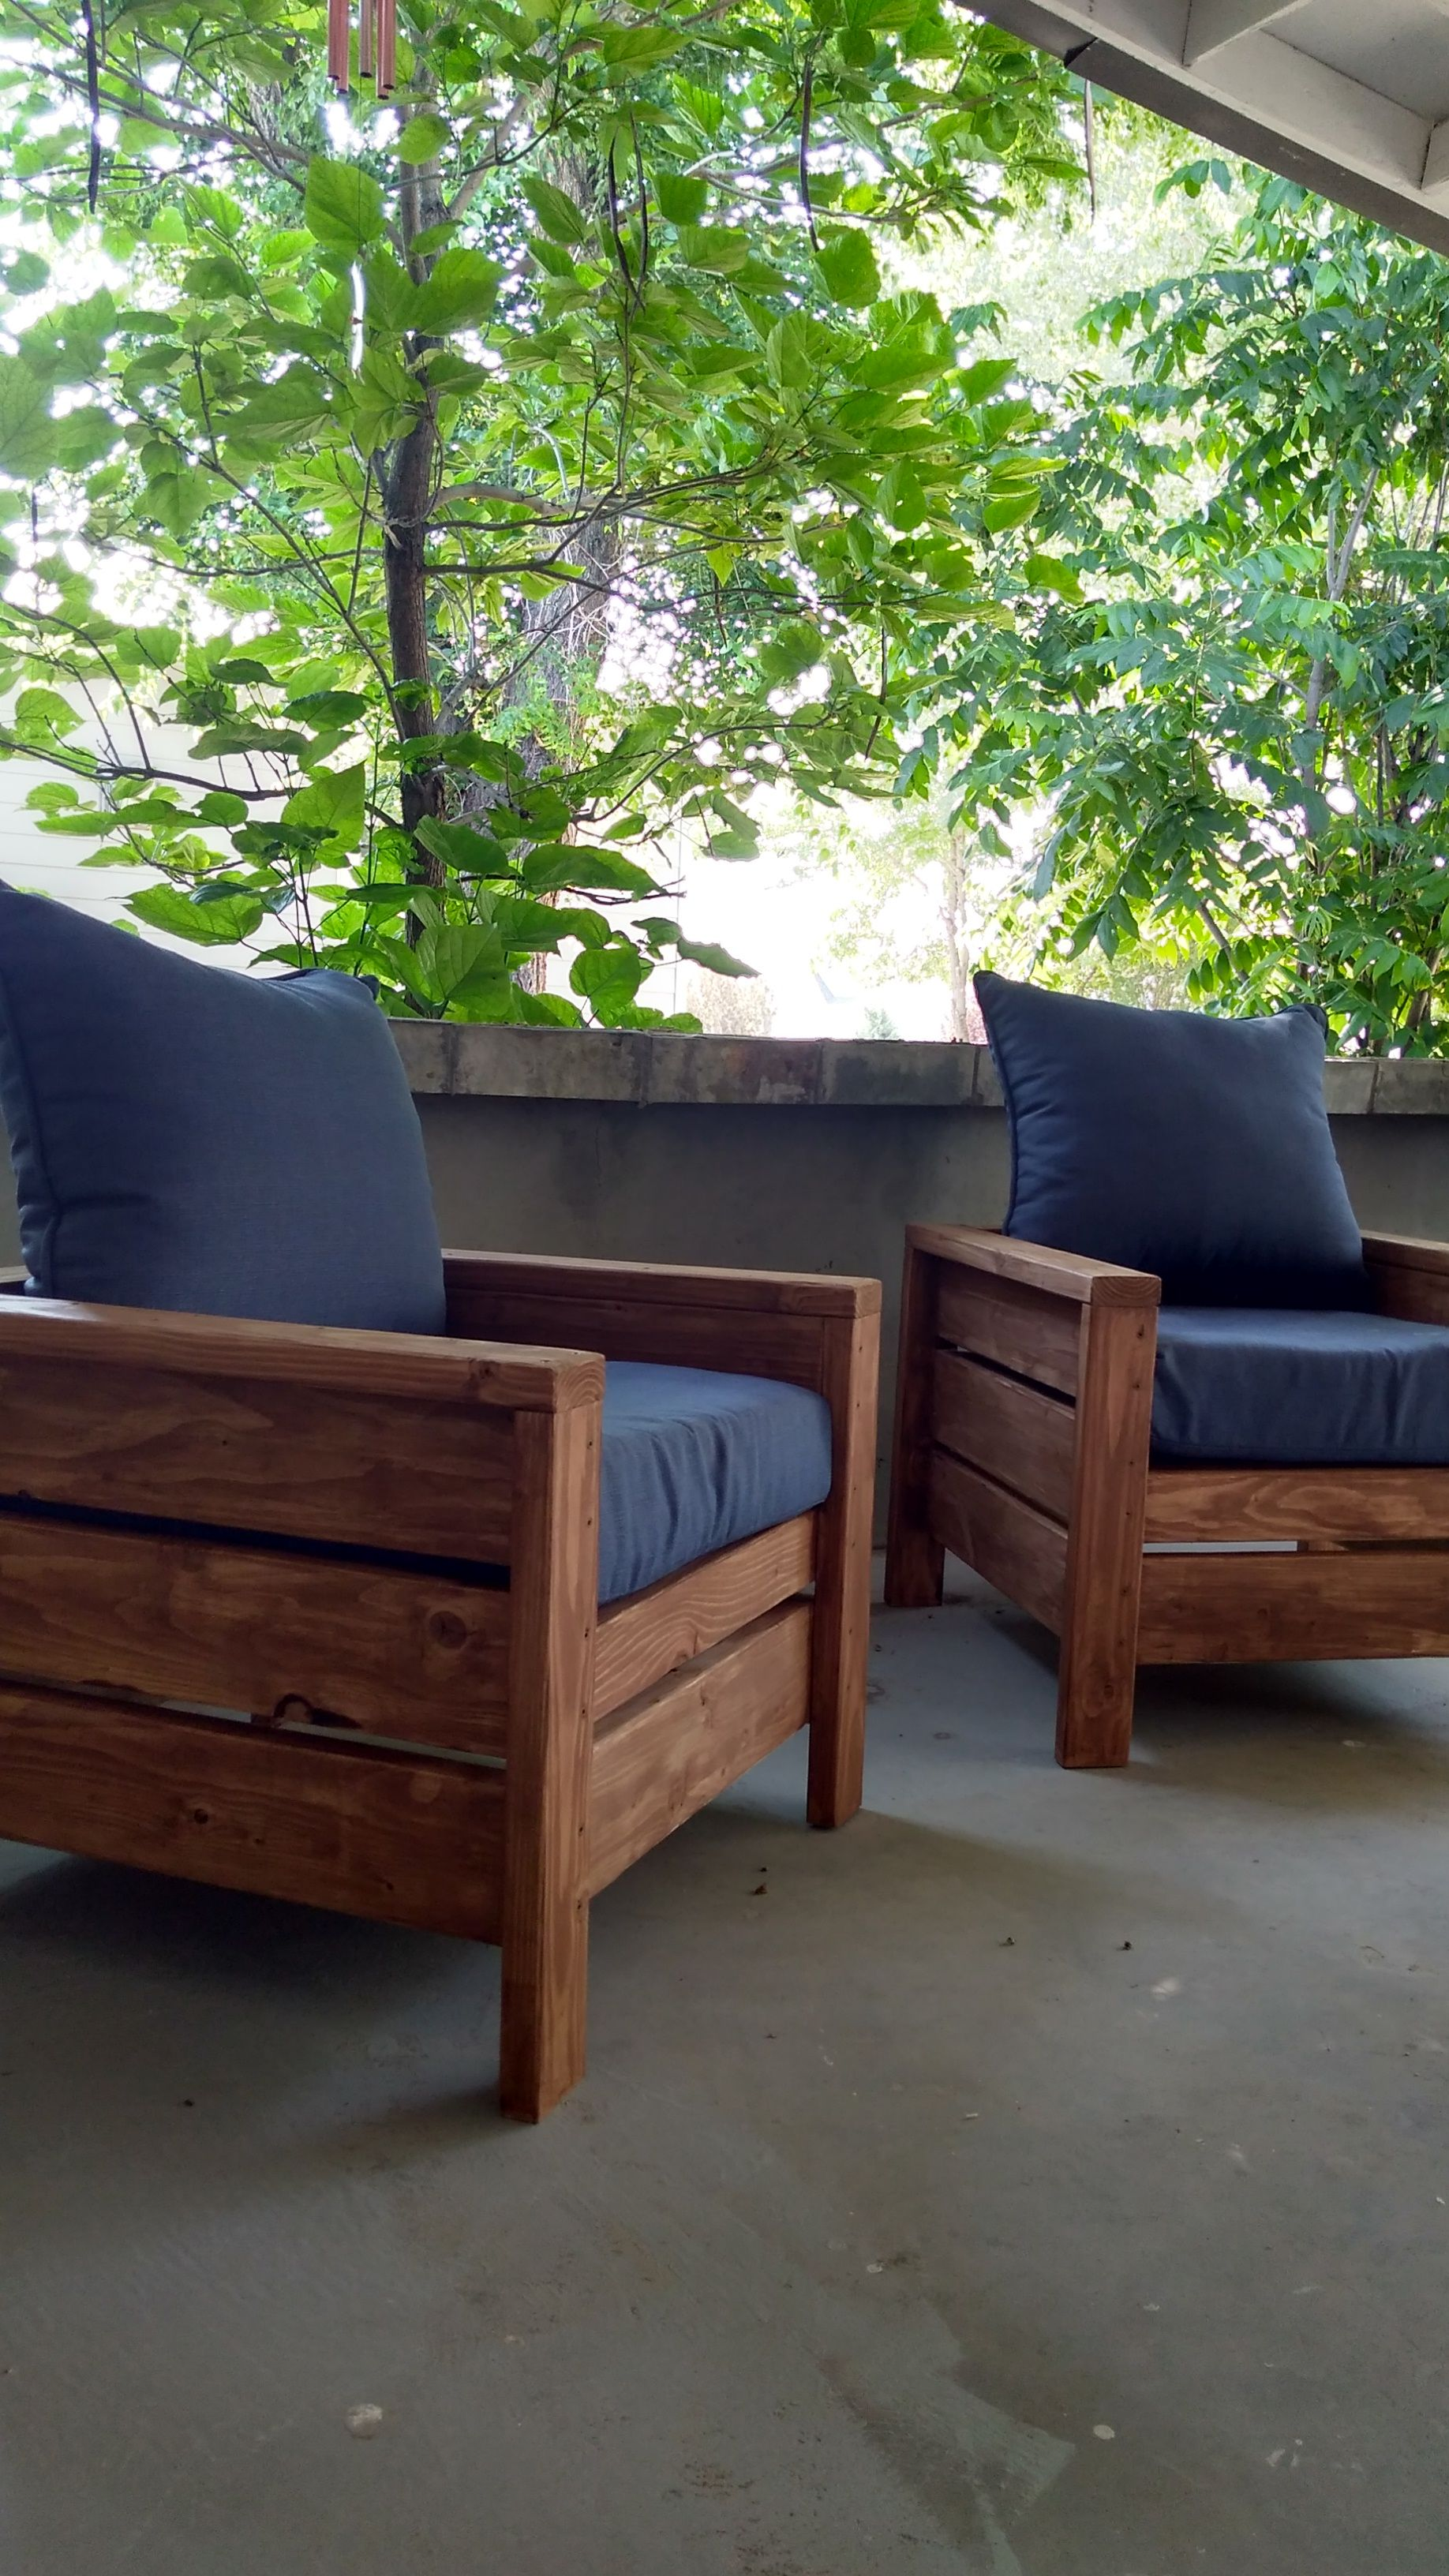 Ana White Patio Chairs - Diy Projects Sunporch